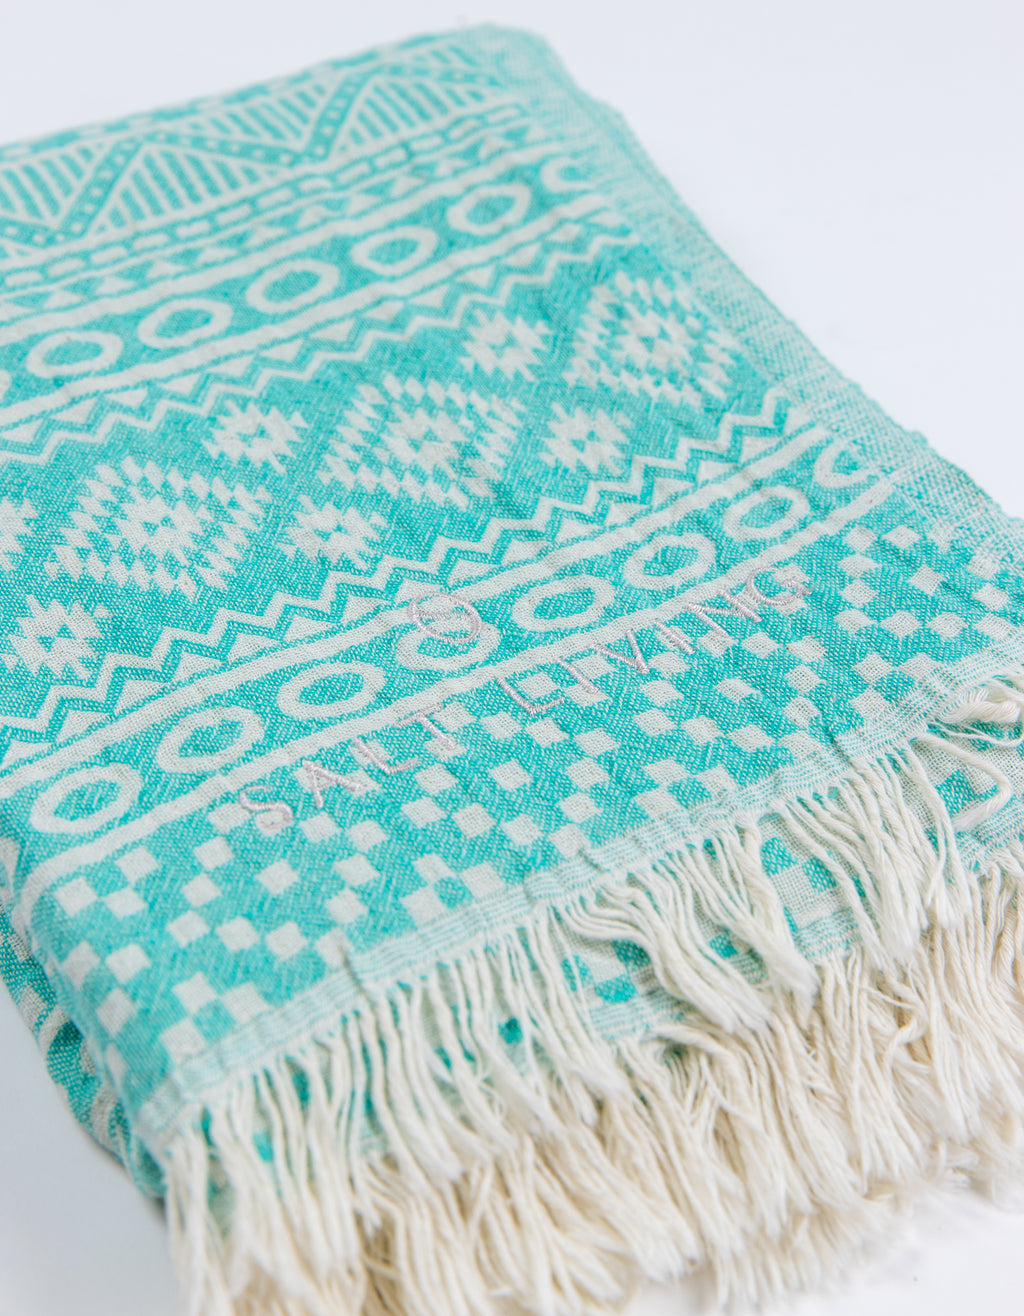 Soleil Turkish Towel in Shallows from Salt Living